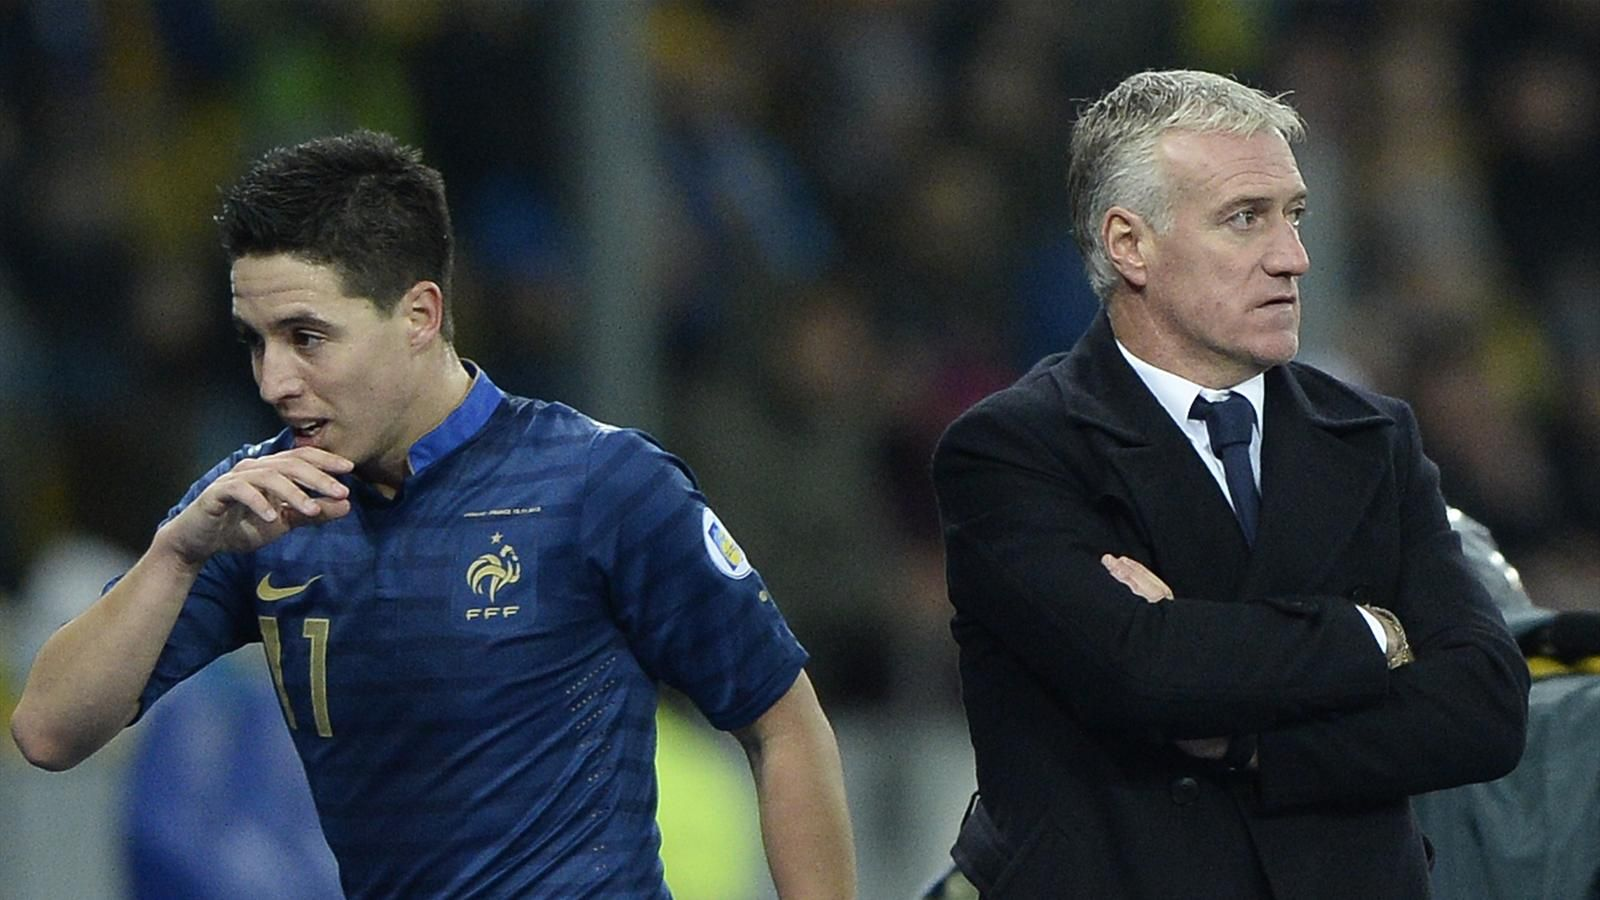 Nasri Hits Out At Deschamps And Lloris Methinks The Lady Protests Too Much France National Team Arsenal Players Latest Sports News